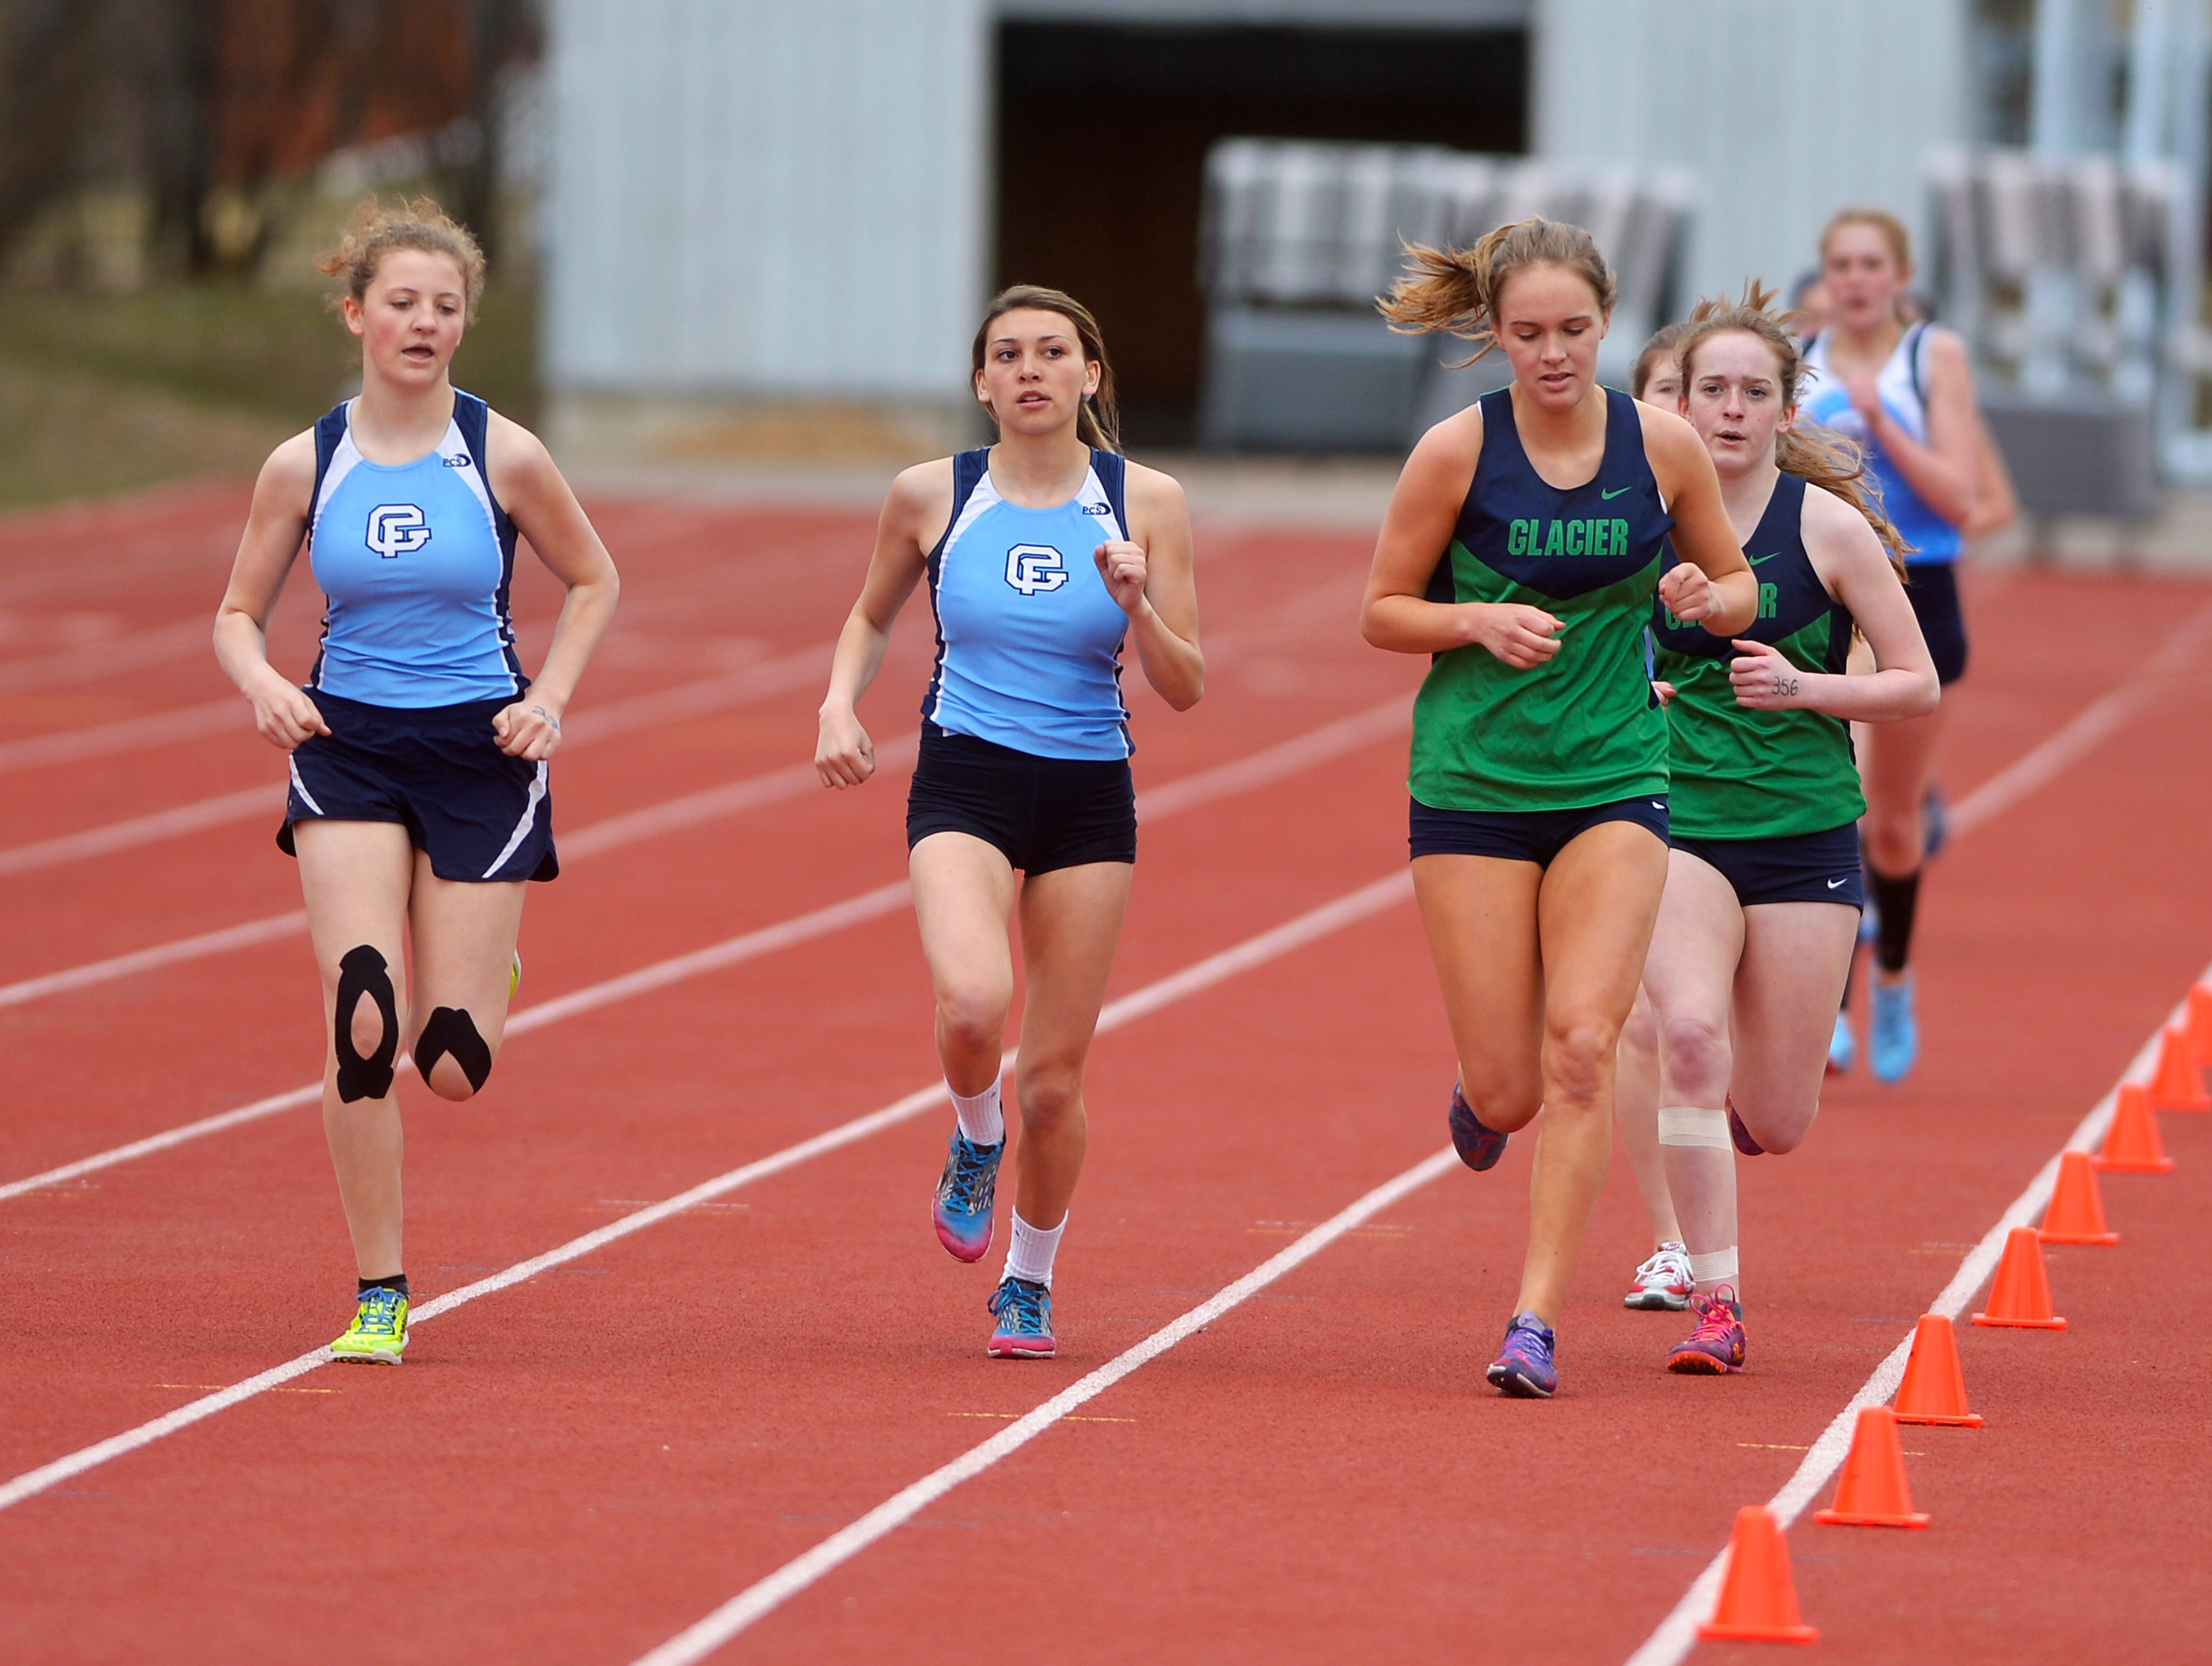 The girls 1600m run during Friday's track meet between Great Falls High and Glacier.